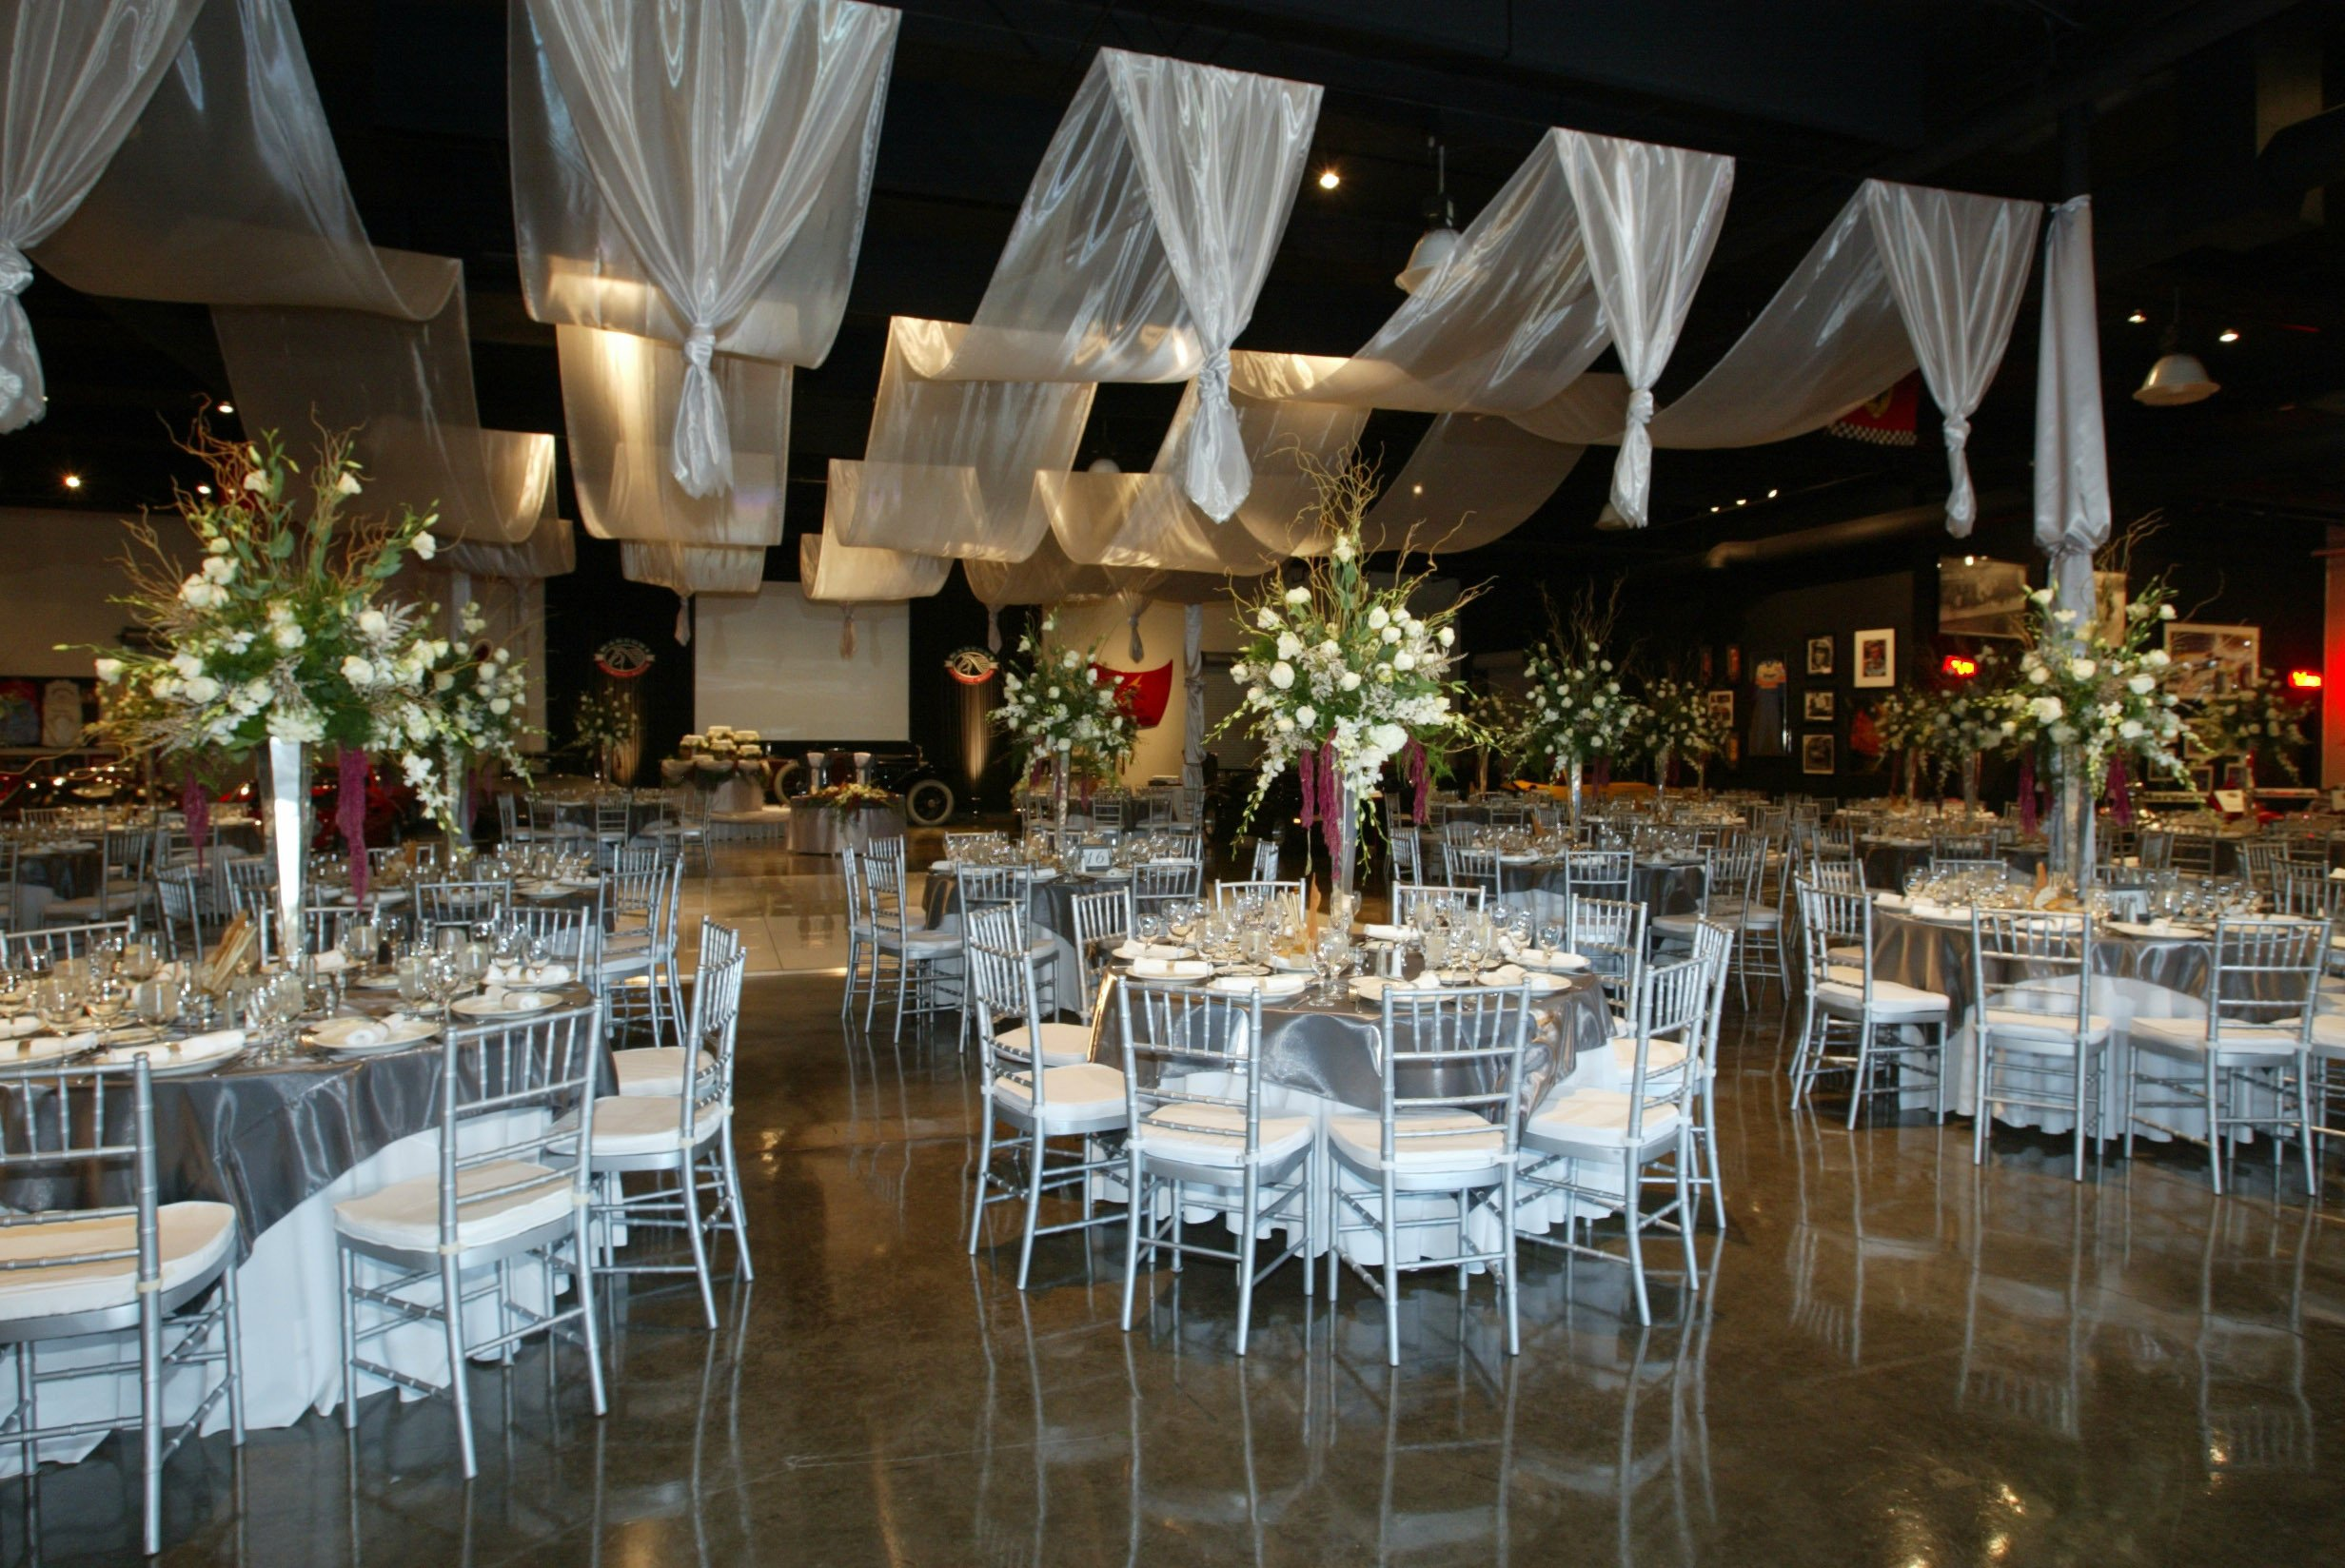 Decor Ideas for Wedding Reception Luxury Wedding Reception at A Glance Madailylife